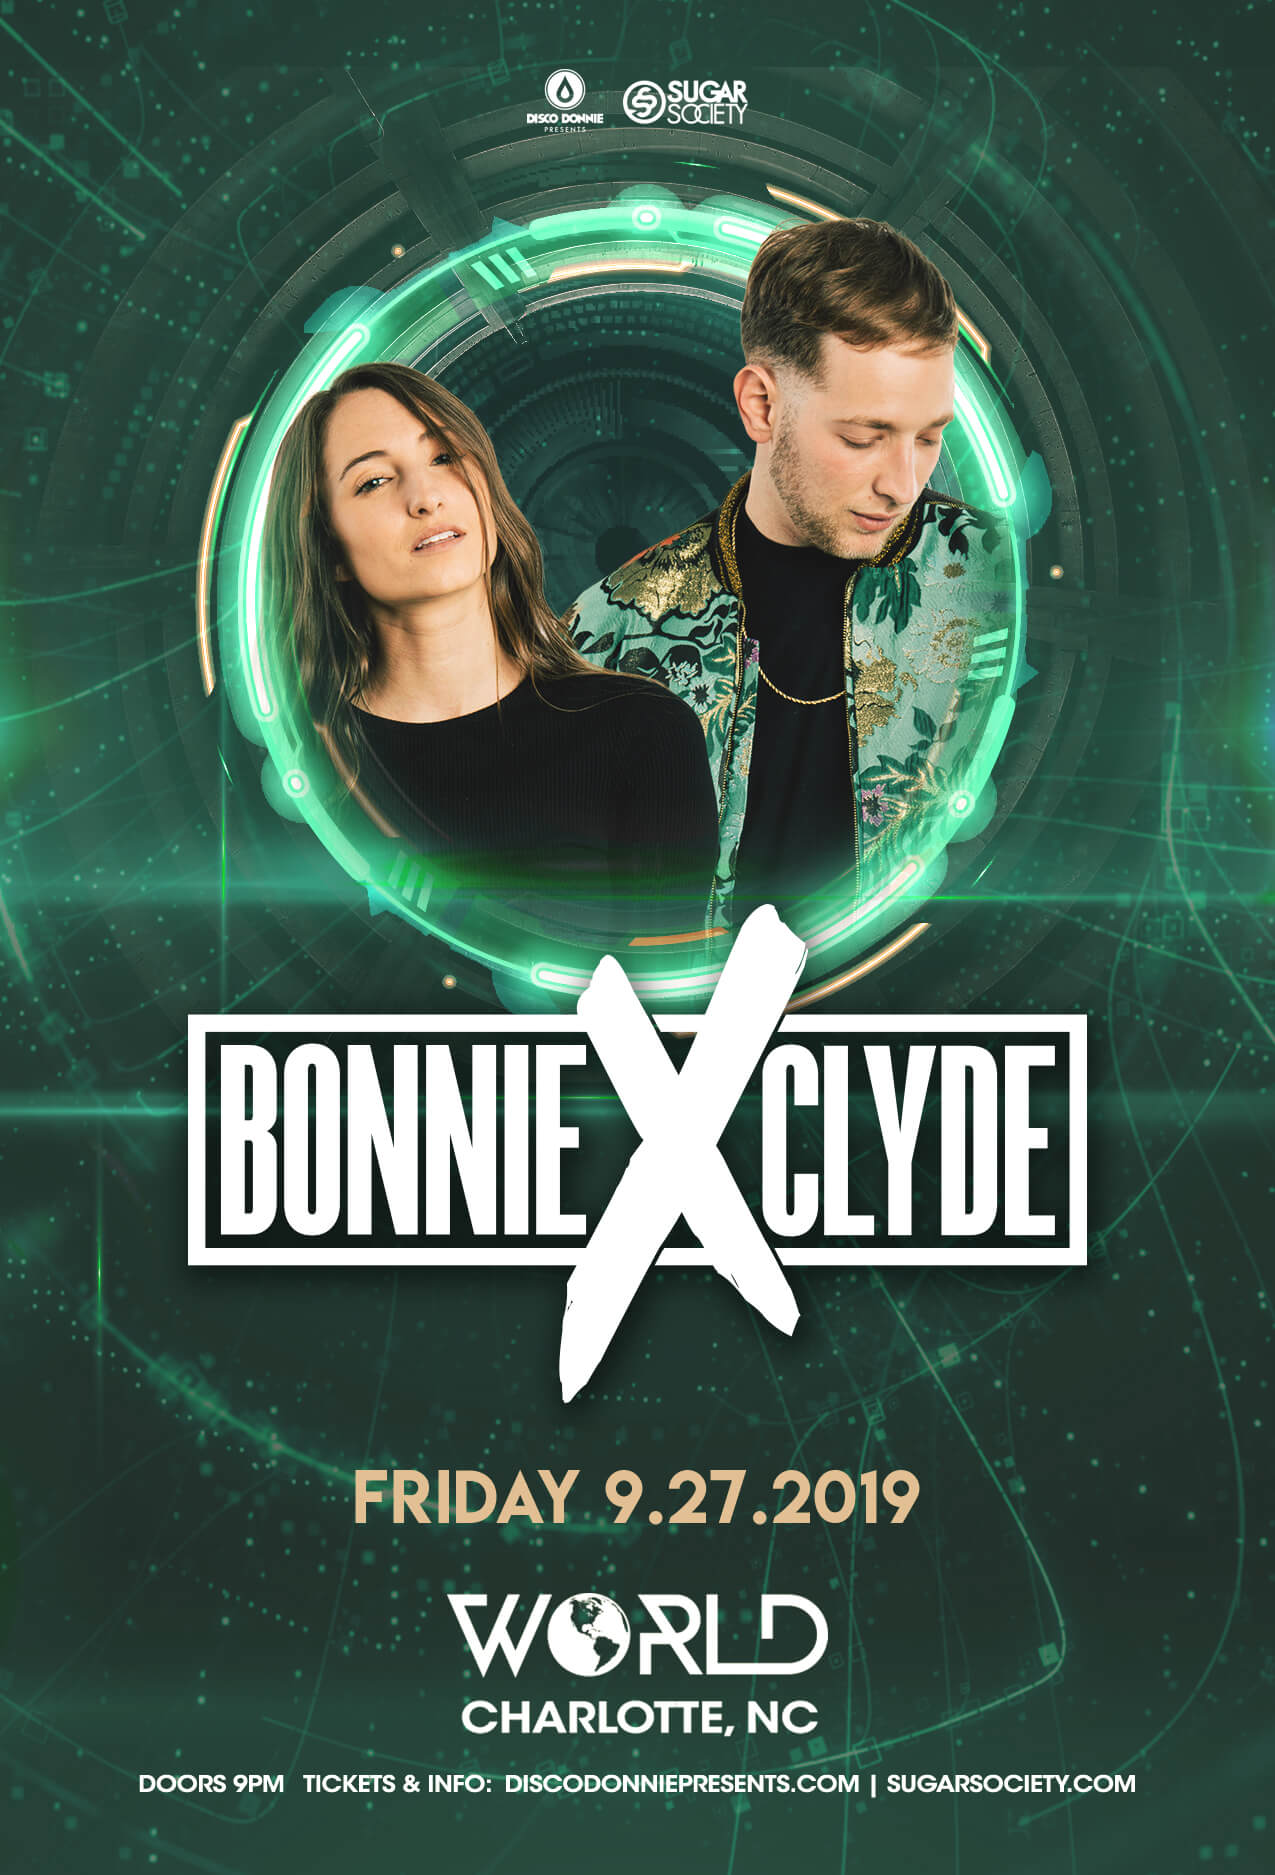 Bonnie X Clyde in Charlotte